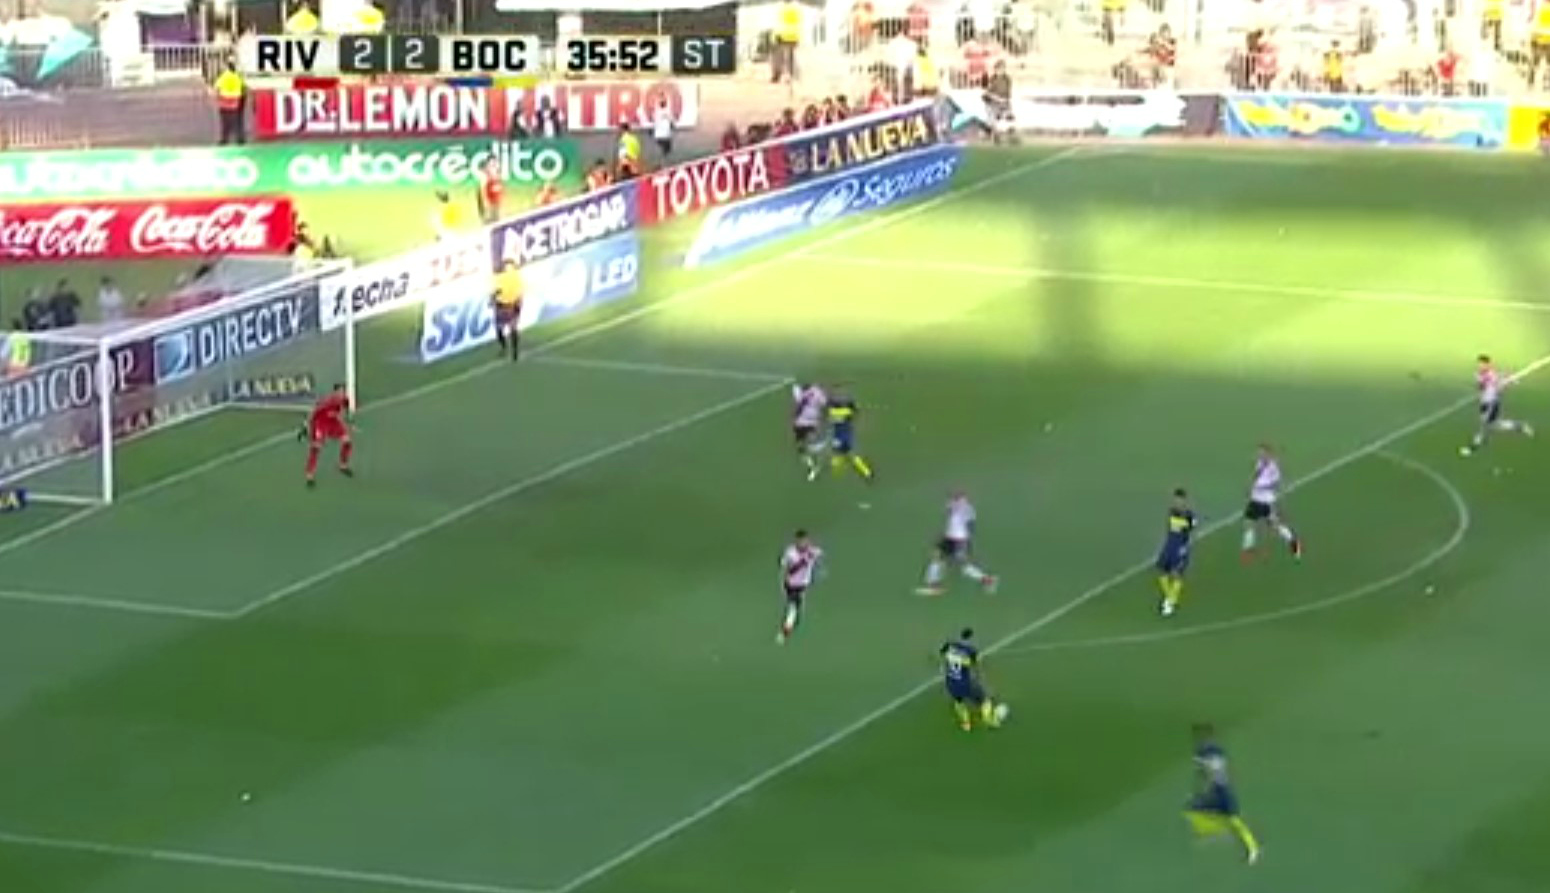 Ex-Manchester United and Manchester City star Carlos Tevez scores brilliant goals in Superclasico